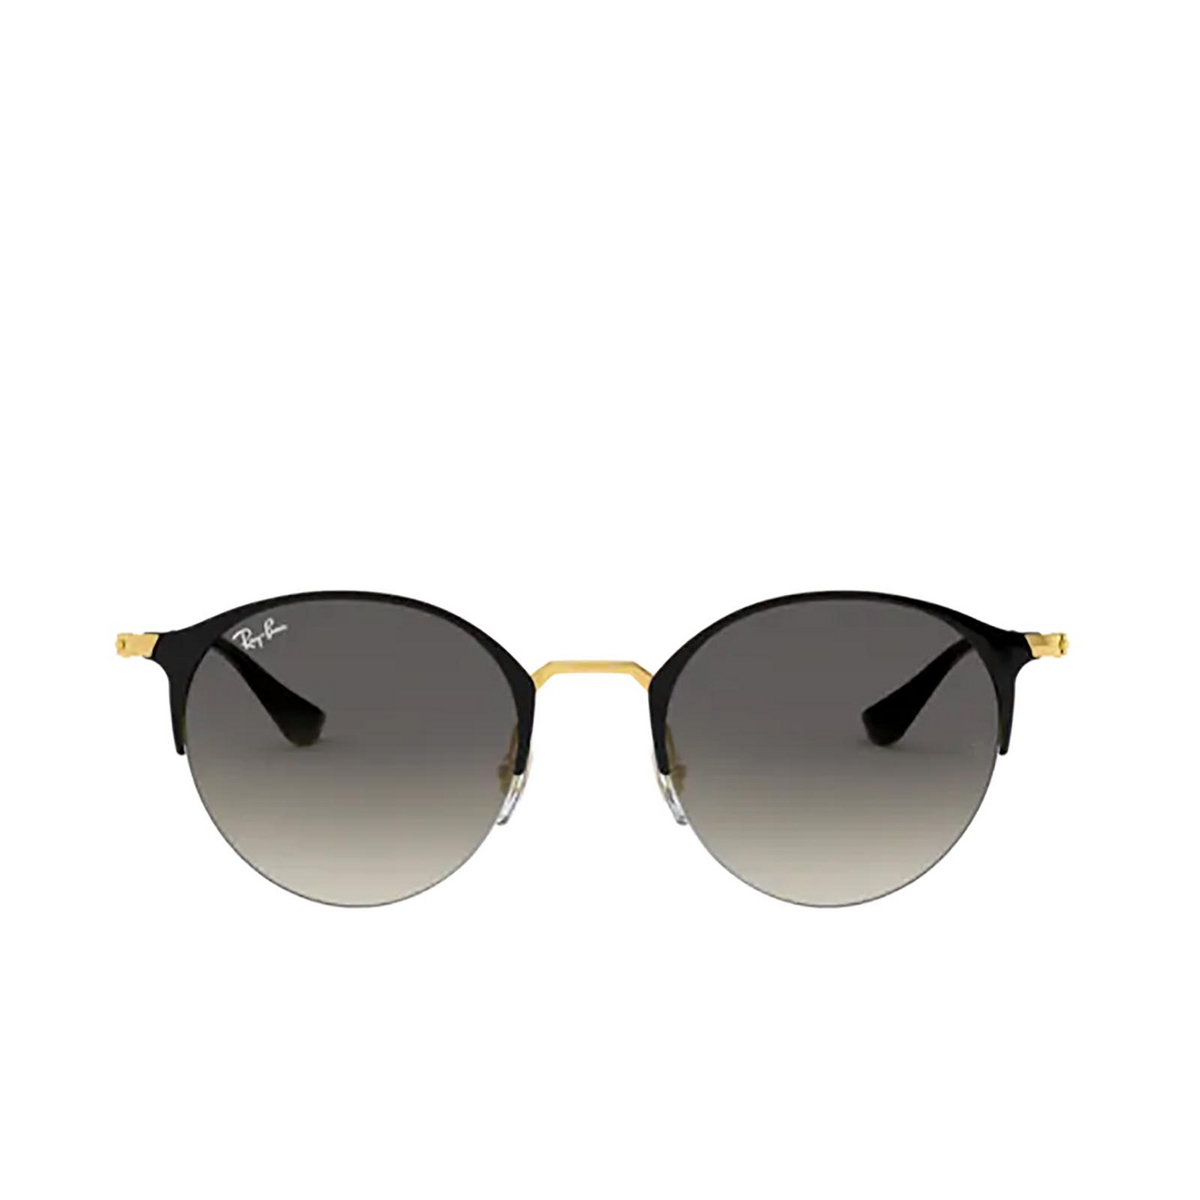 Ray-Ban® Round Sunglasses: RB3578 color Black On Arista 187/11 - 1/3.